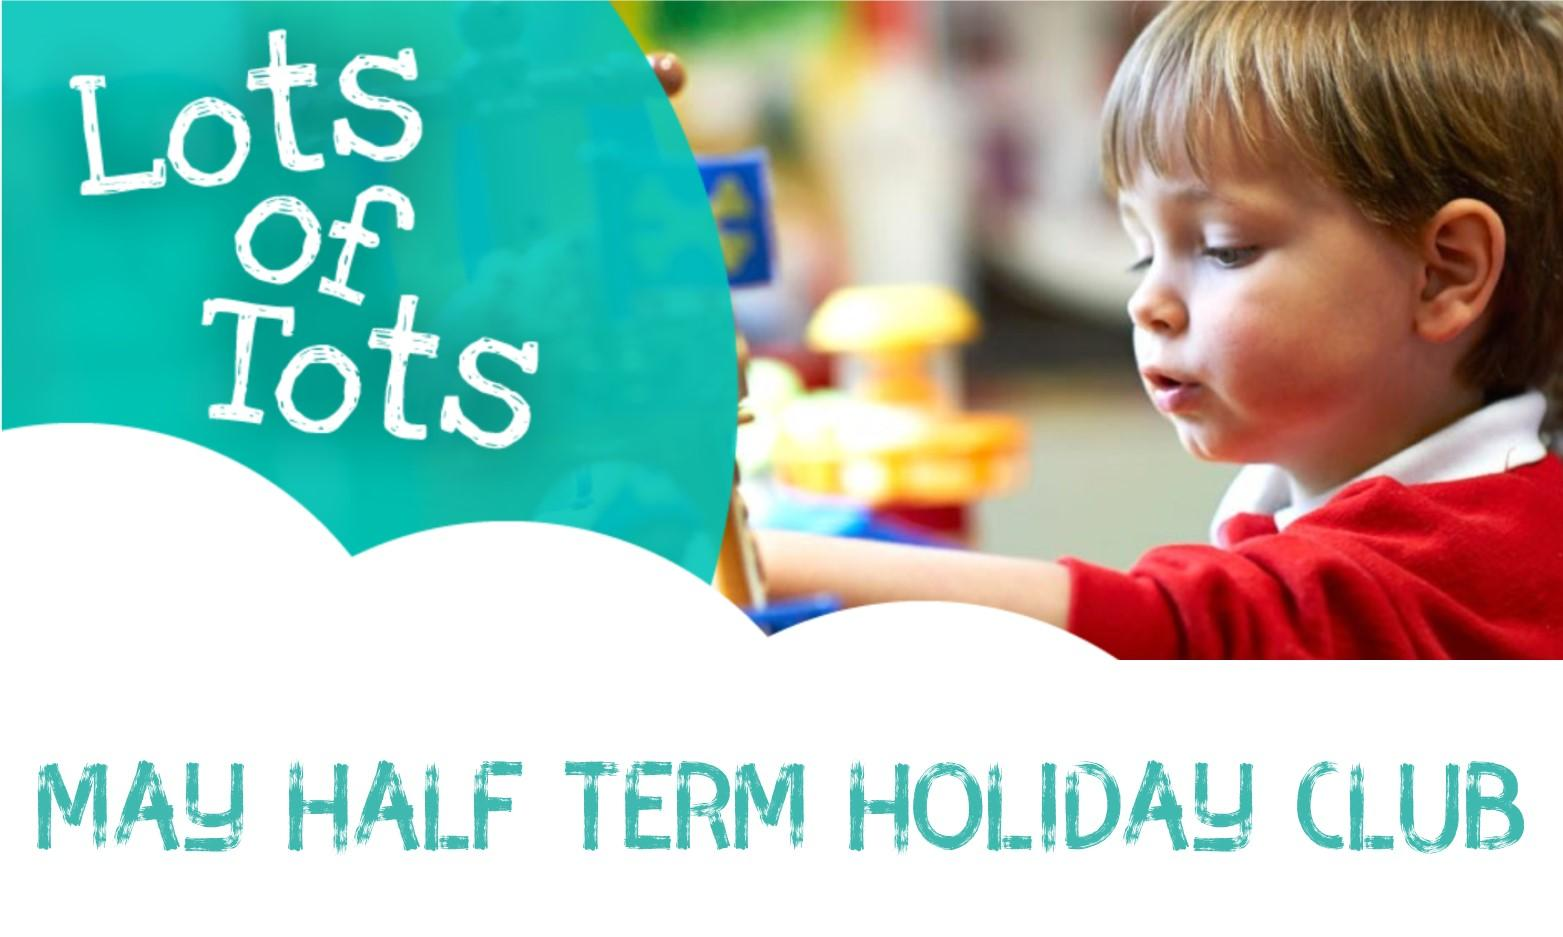 Lots of Tots Holiday Club